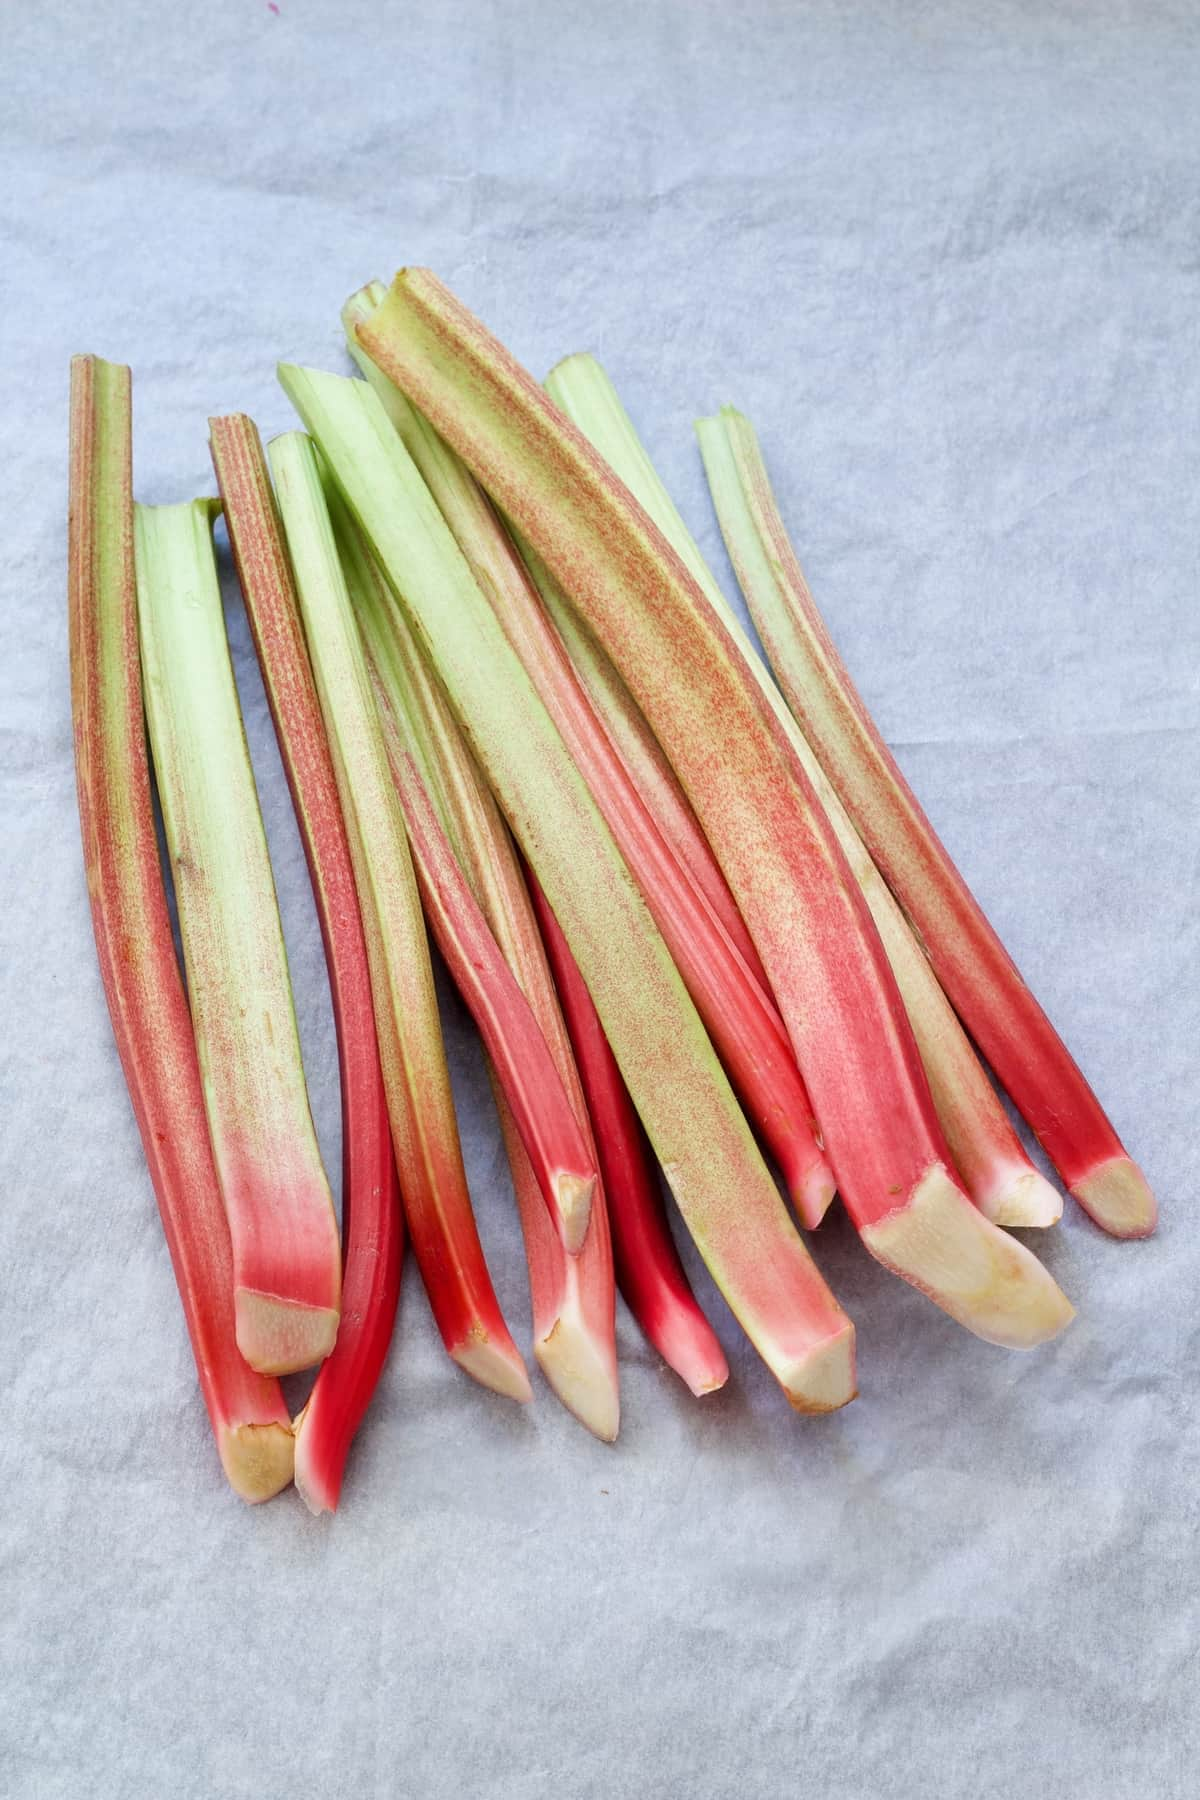 Bunch of rhubarb stalks.